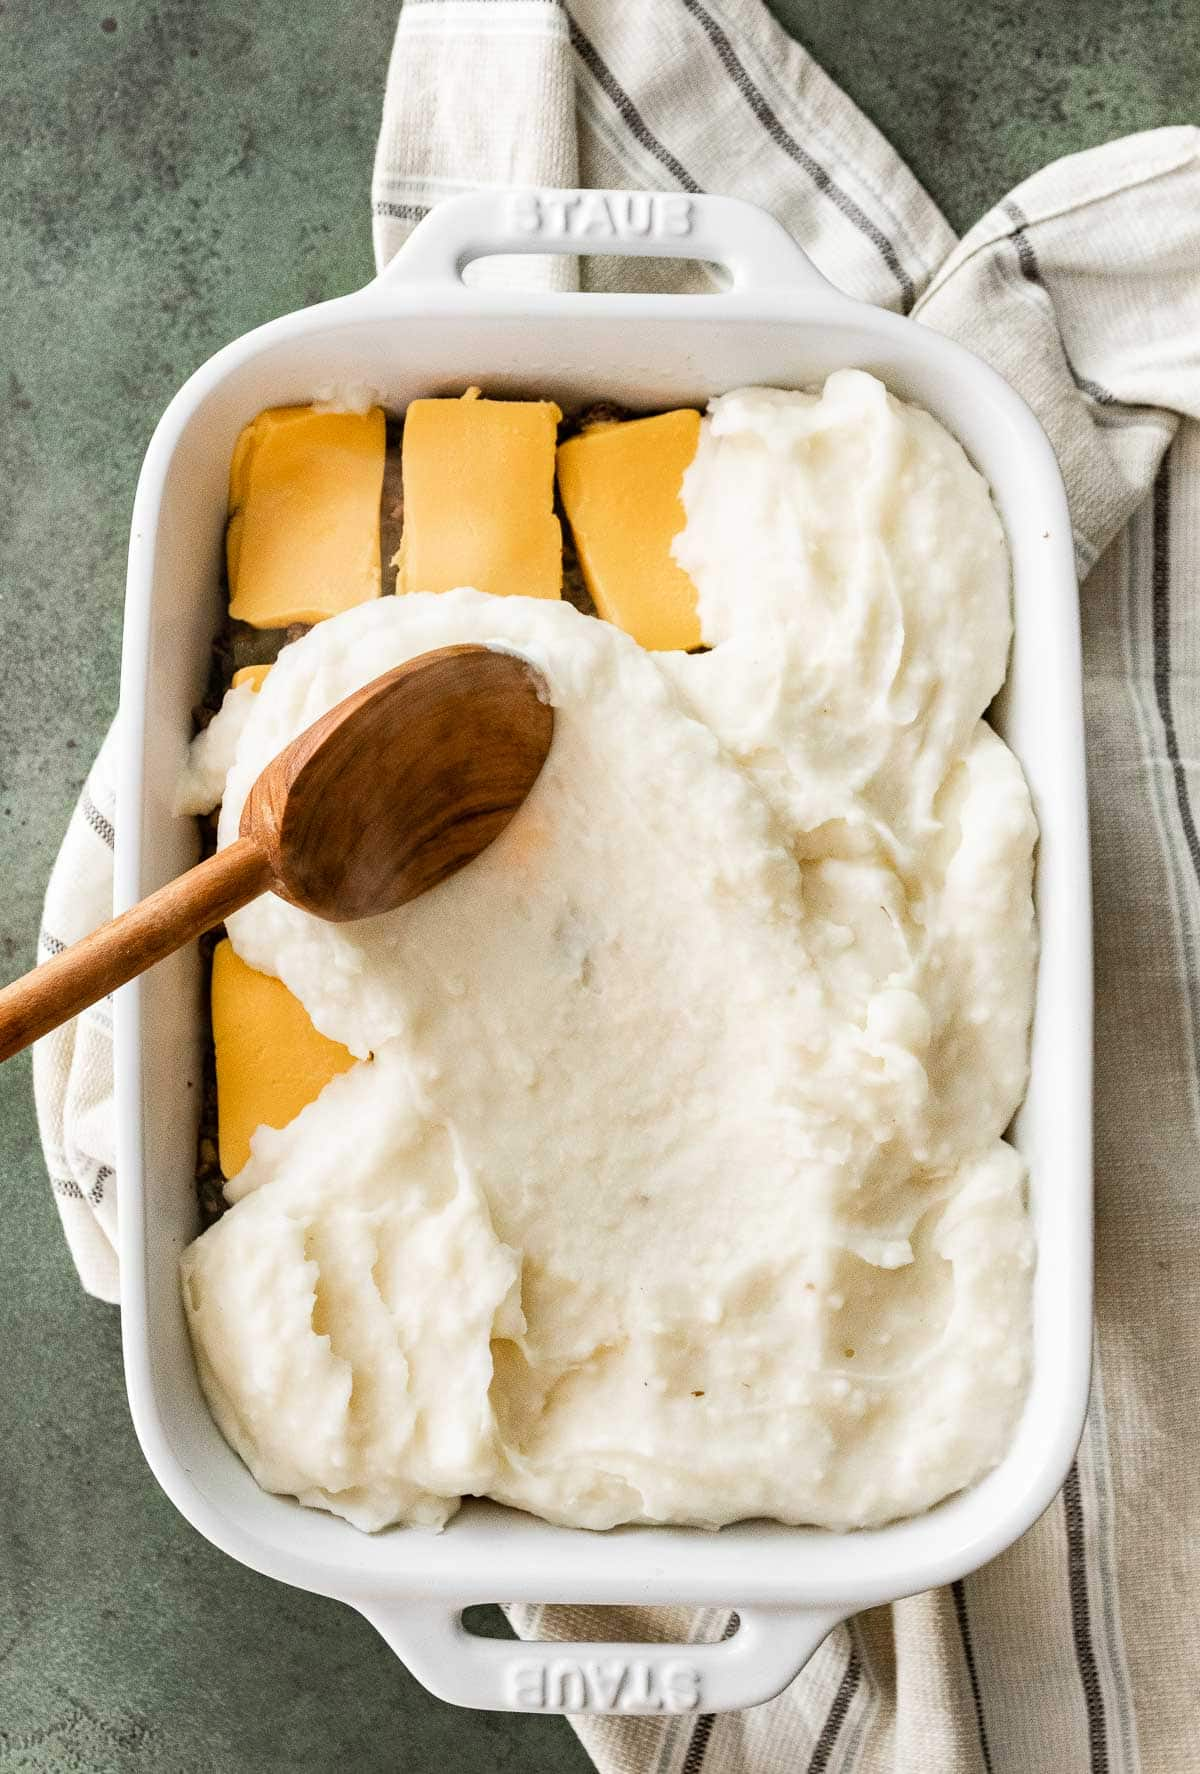 Assembling layers in baking dish for Philly Cheesesteak Shepherd's Pie